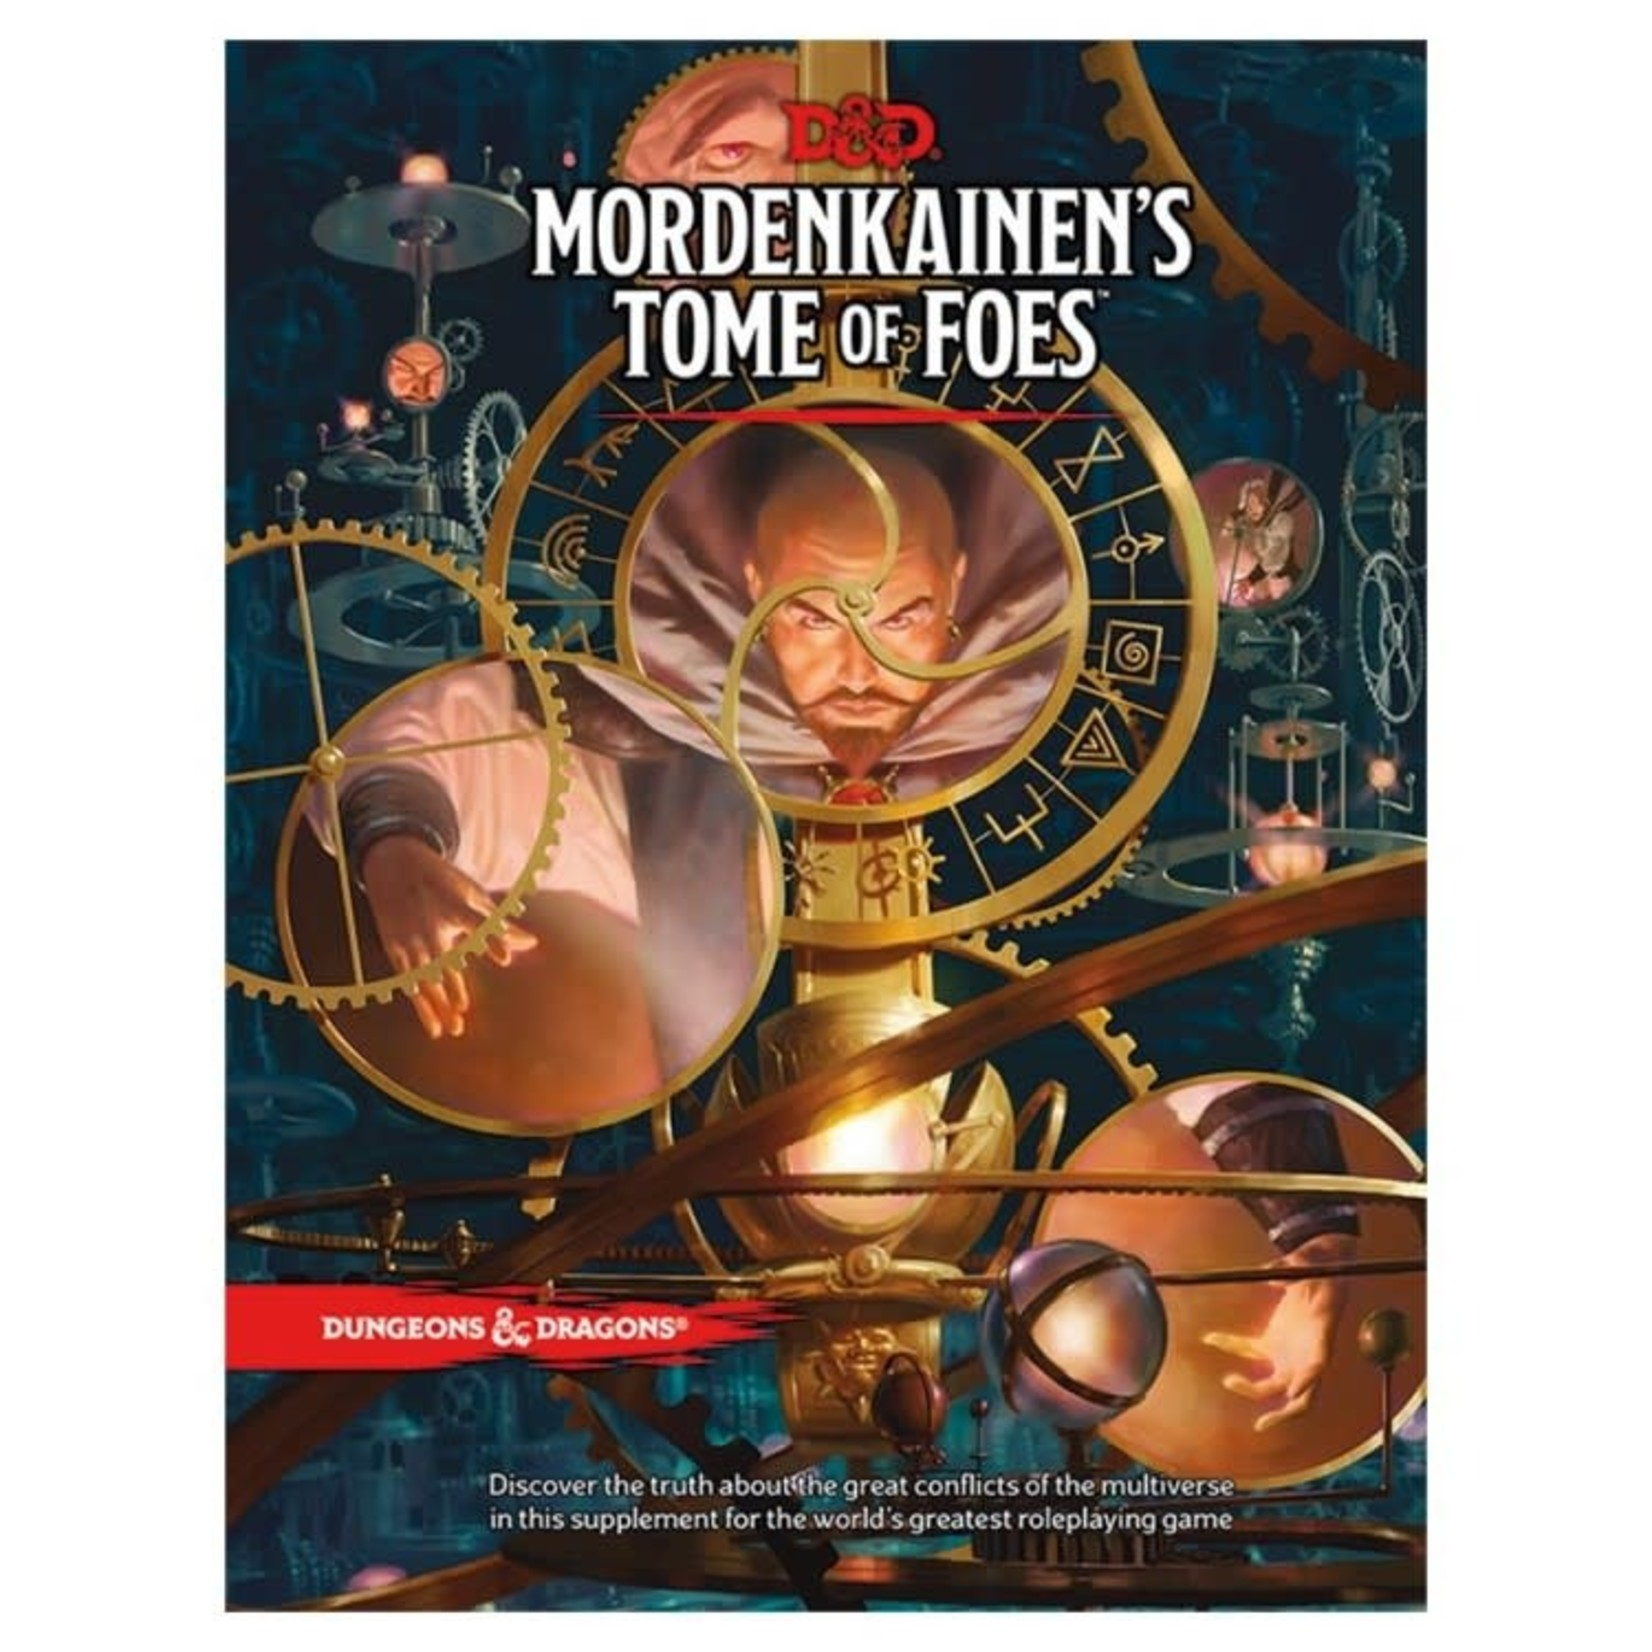 Dungeons & Dragons D&D 5e Mordenkainen's Tome of Foes